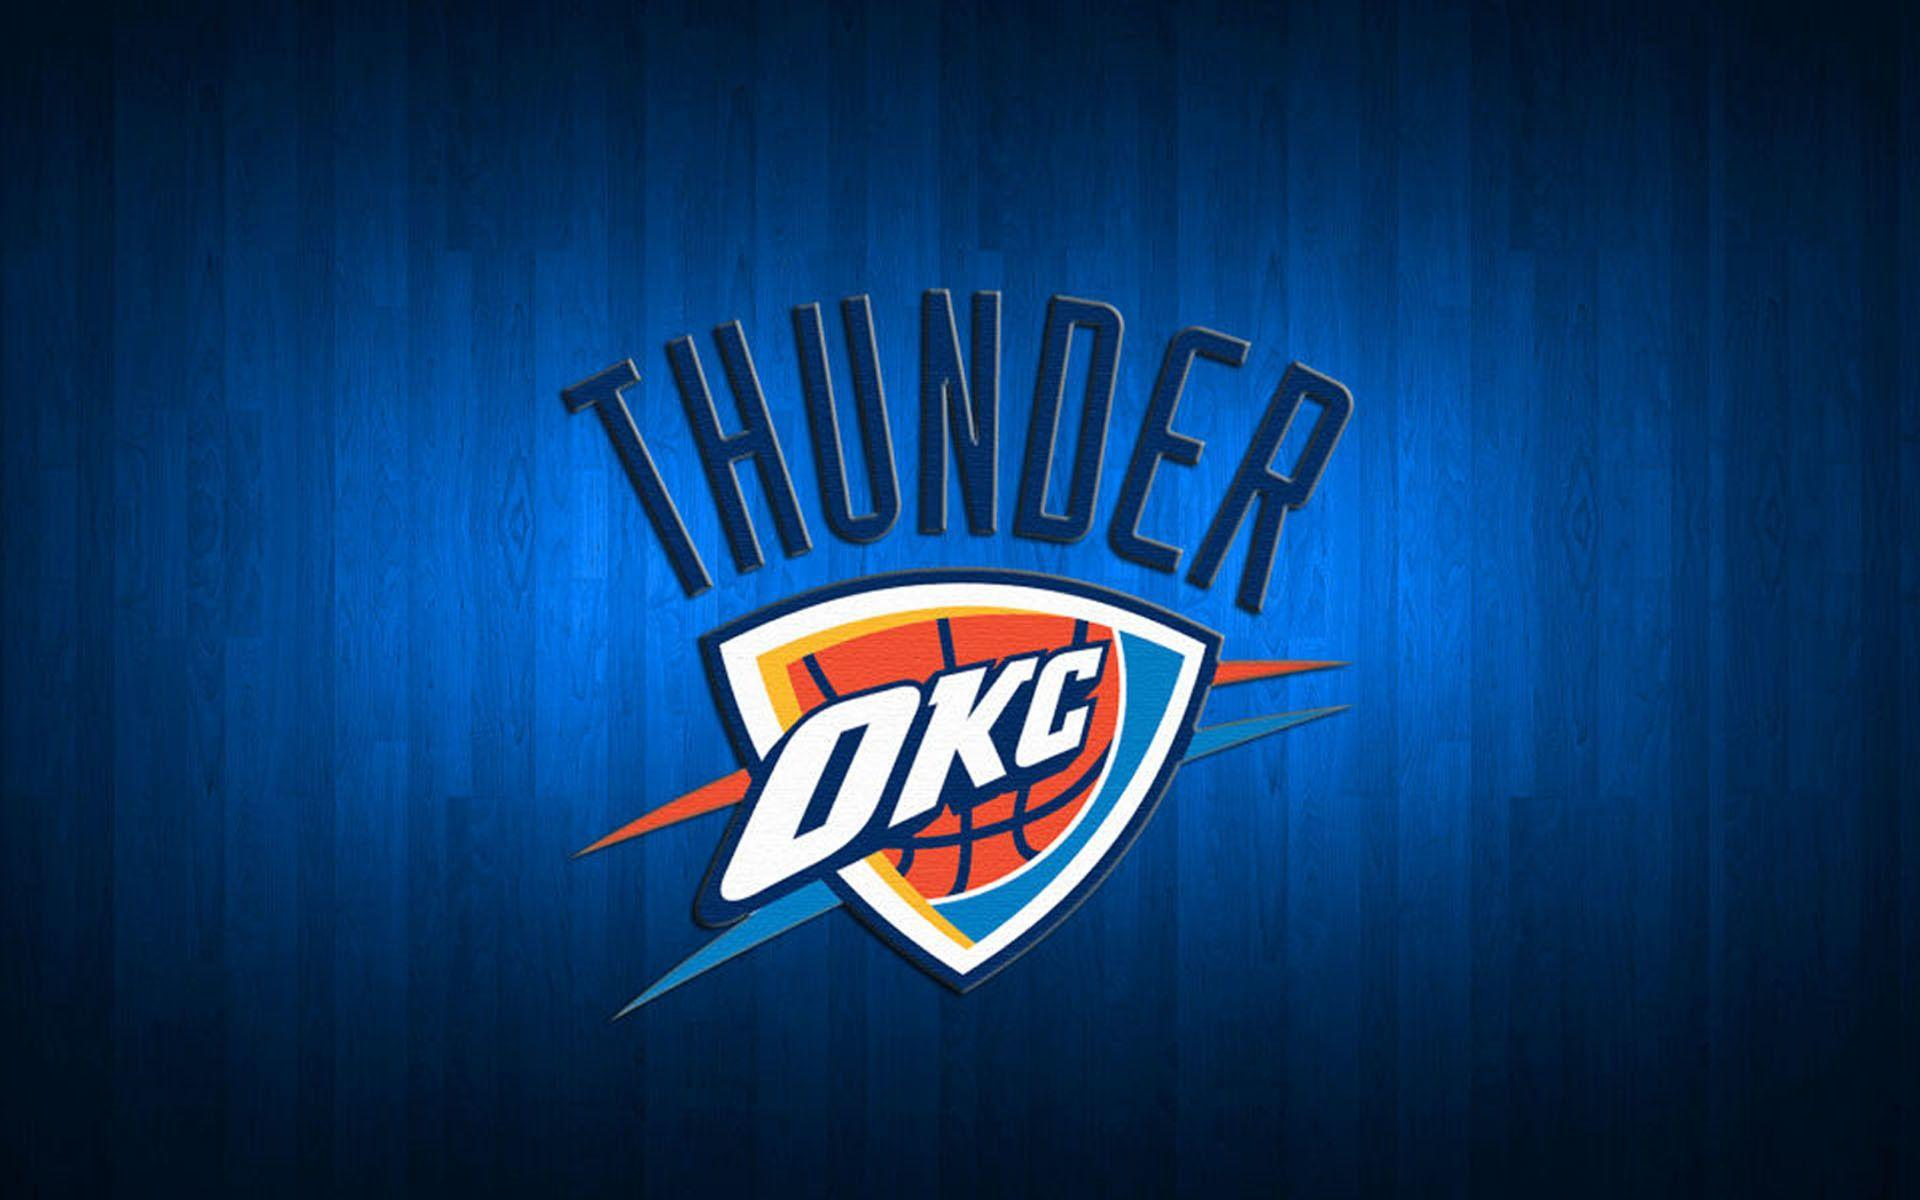 How to Select the Best Okc Thunder wallpaper